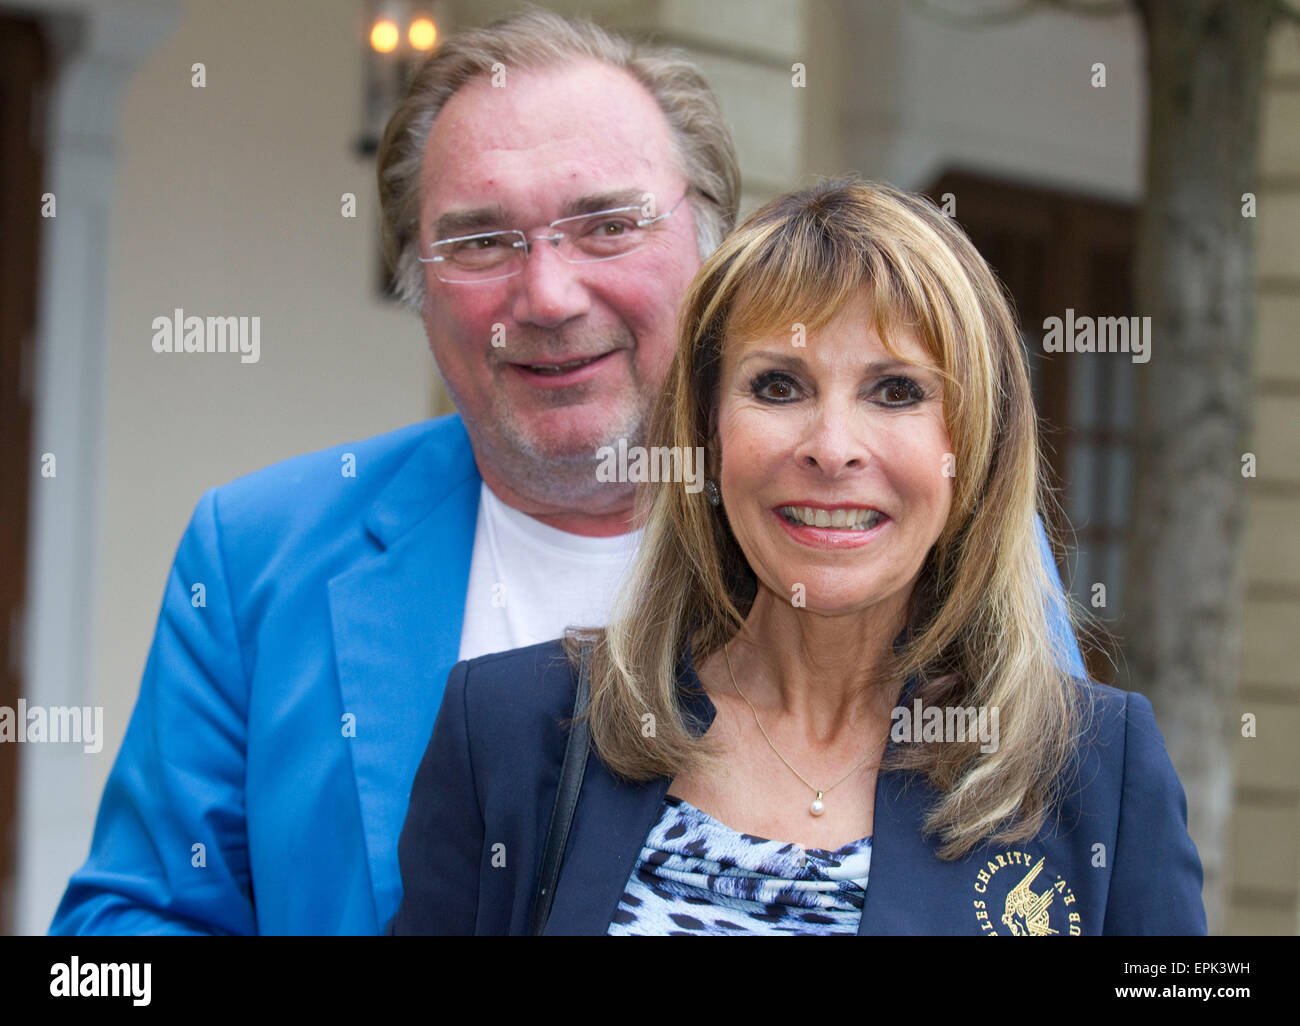 Rust, Germany - May 4, 2015: Eagles Charity Golf Cup and Gala at Golfclub Breisgau and Europa Park, Rust with Singer - Stock Image